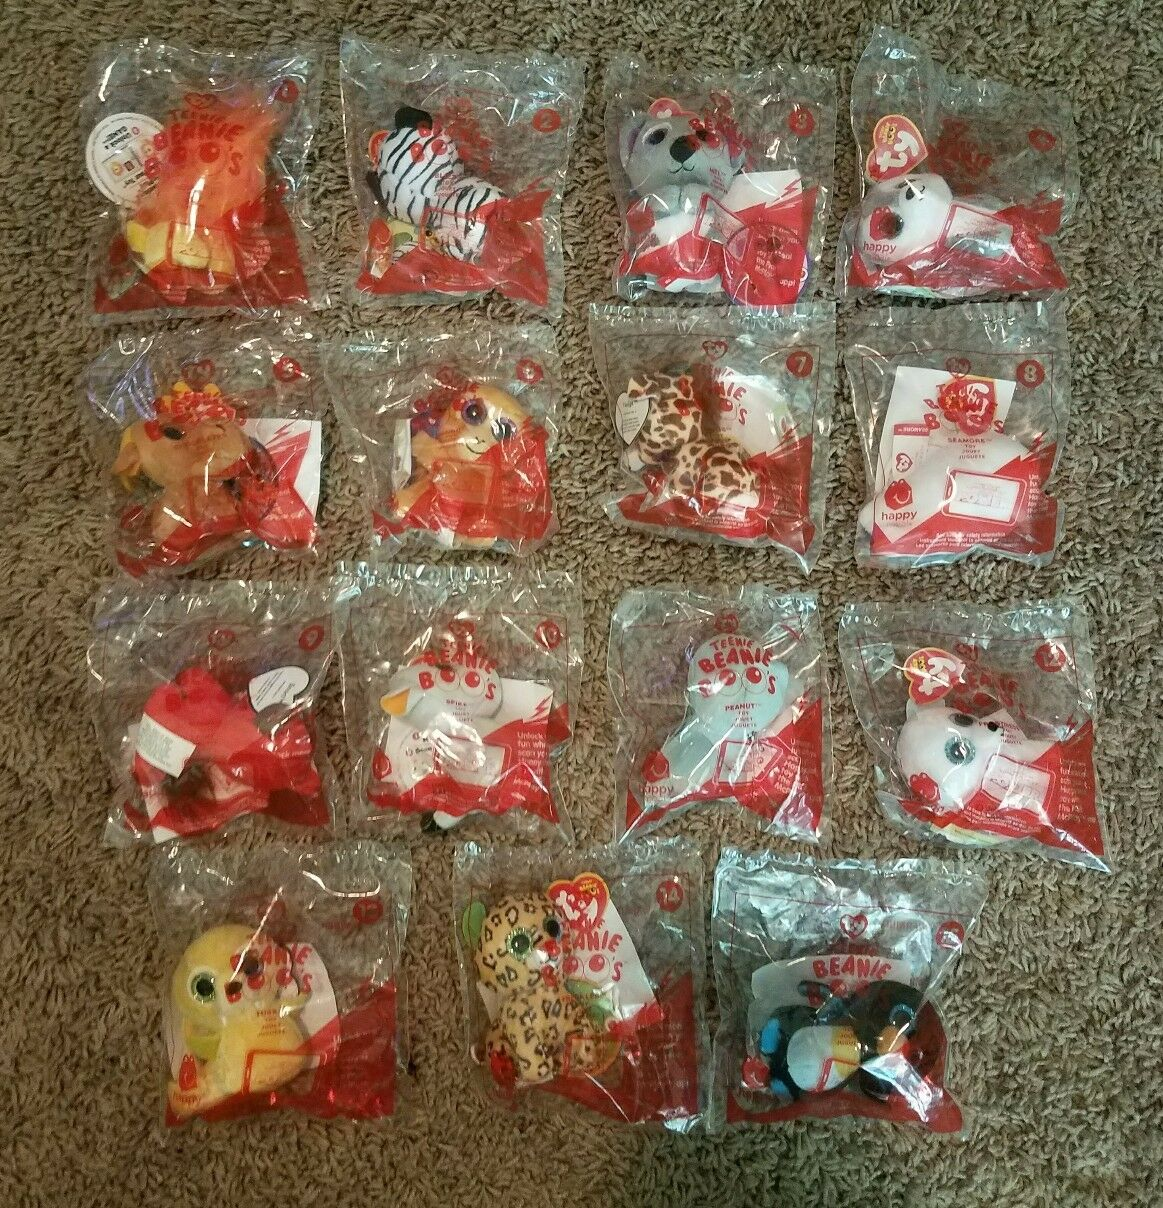 Mcdonalds Teenie Beanie Boos Happy Meal Toys Complete Set Of 15 New 2017